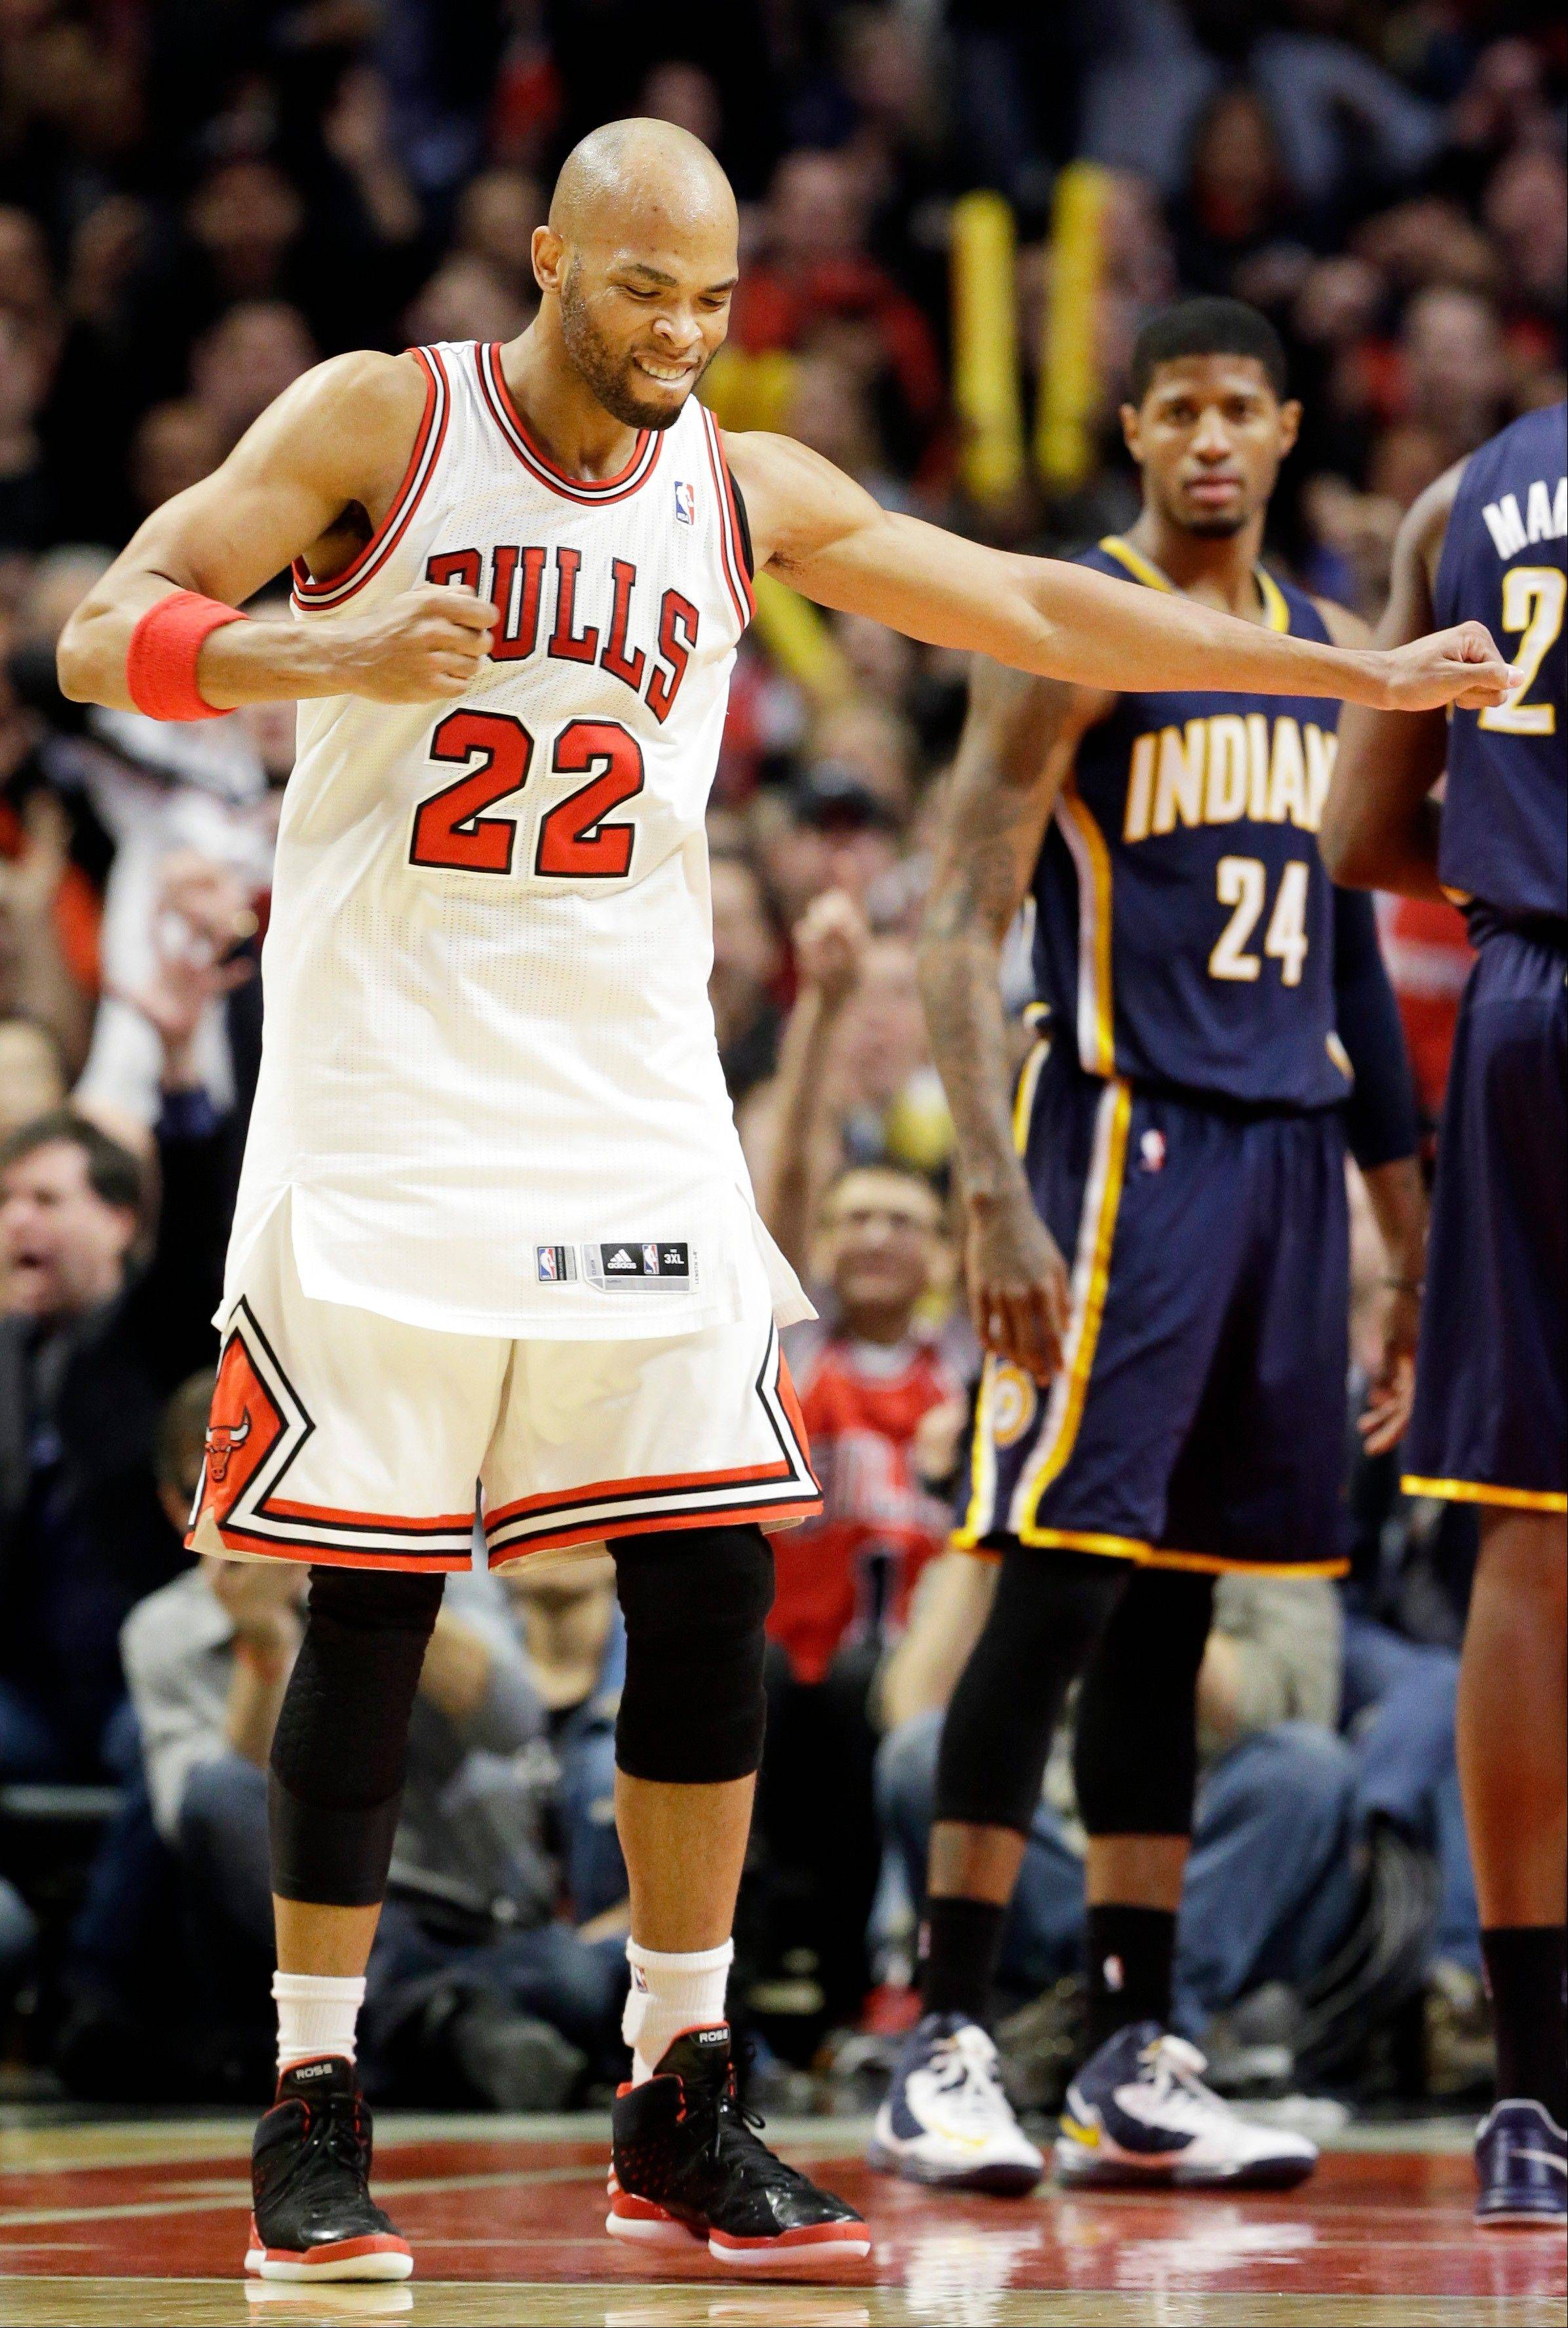 Chicago Bulls forward Taj Gibson (22) reacts after scoring a basket as Indiana Pacers forward Paul George (24) looks on during the second half of an NBA basketball game in Chicago on Saturday, March 23, 2013. The Bulls won 87-84. (AP Photo/Nam Y. Huh)